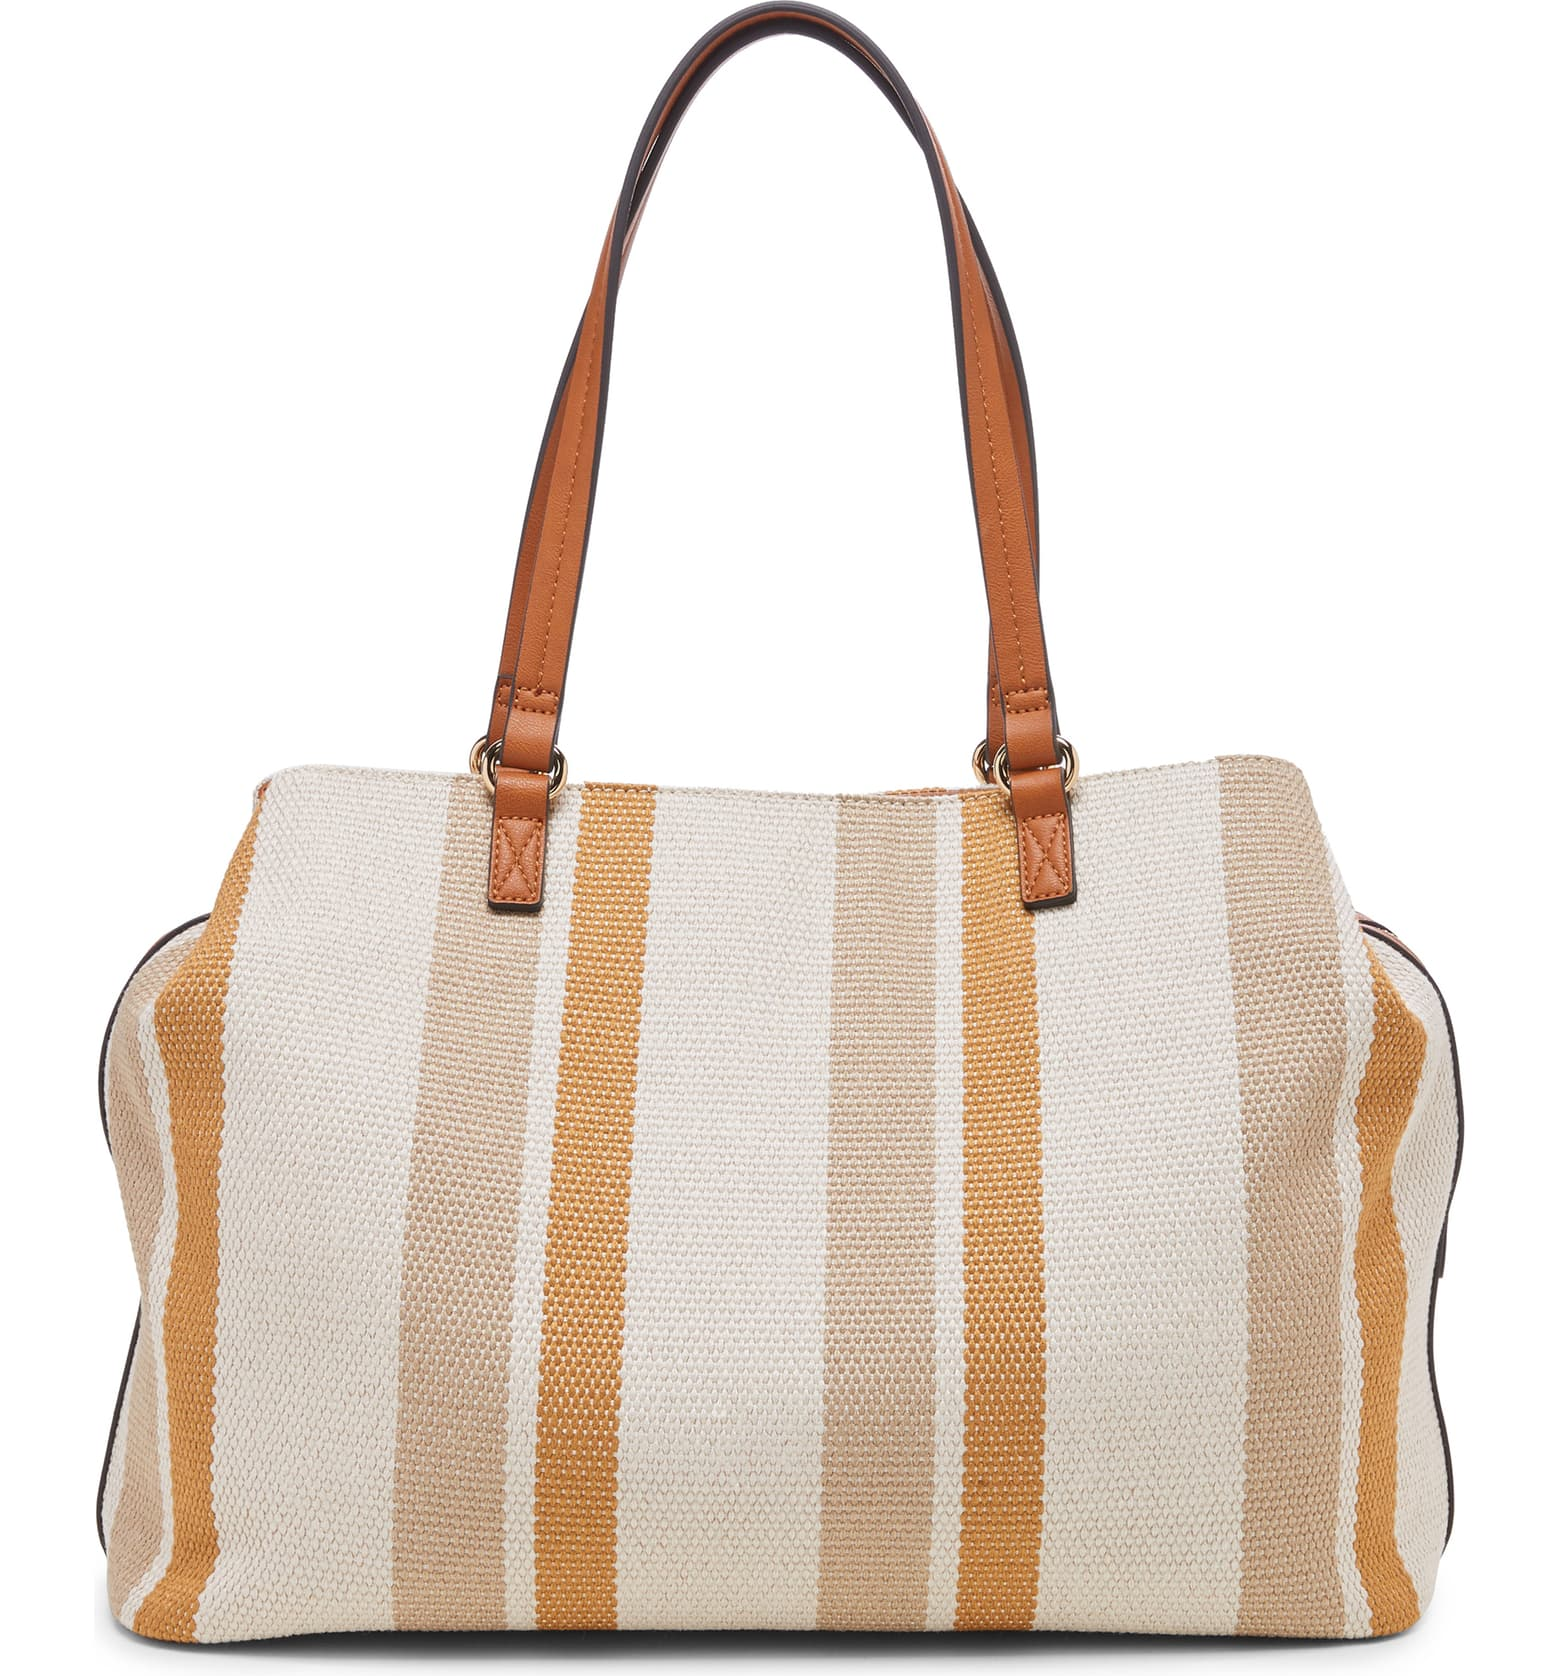 The Tote -